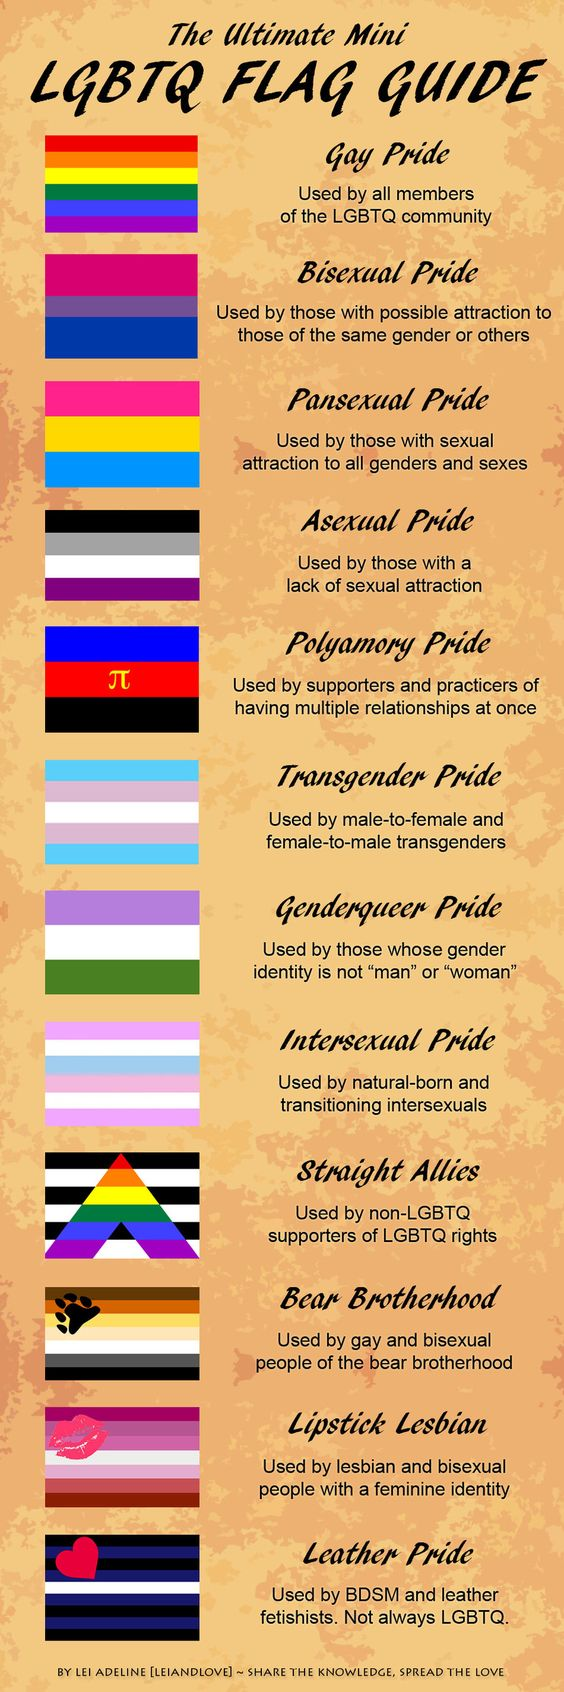 The Ultimate LGBTQ Flag Guide